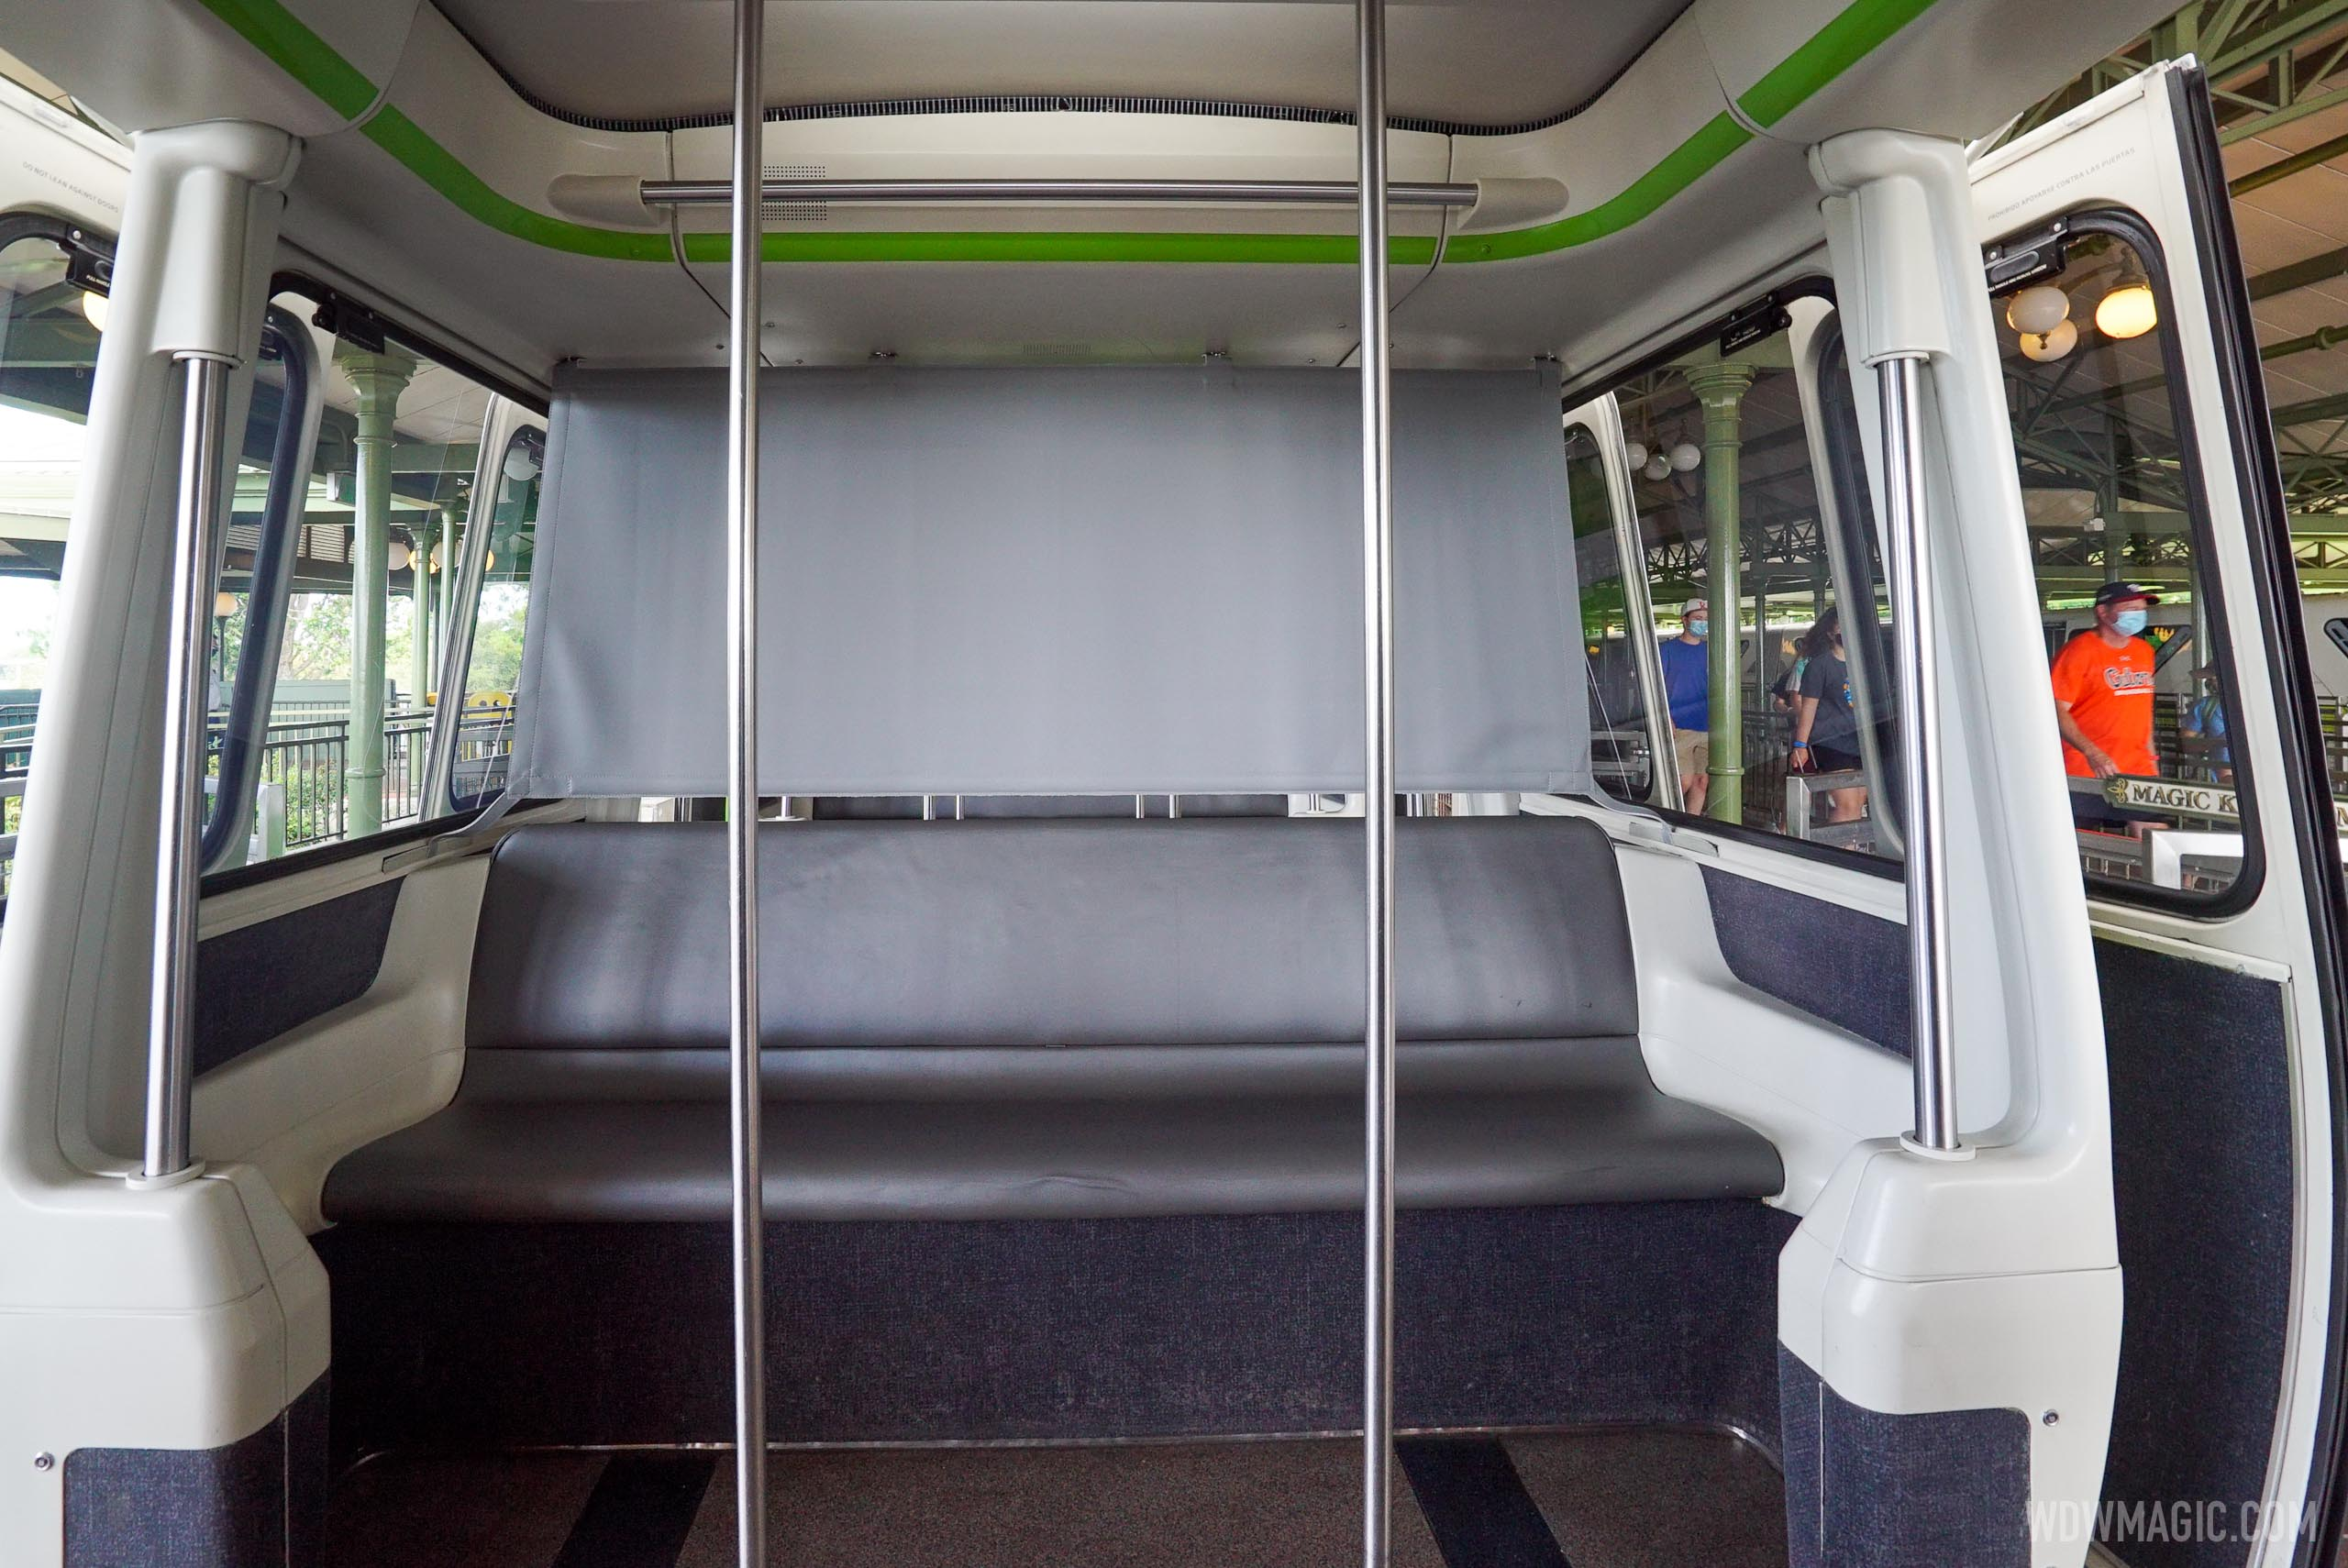 Screens separate the sections of the monorail